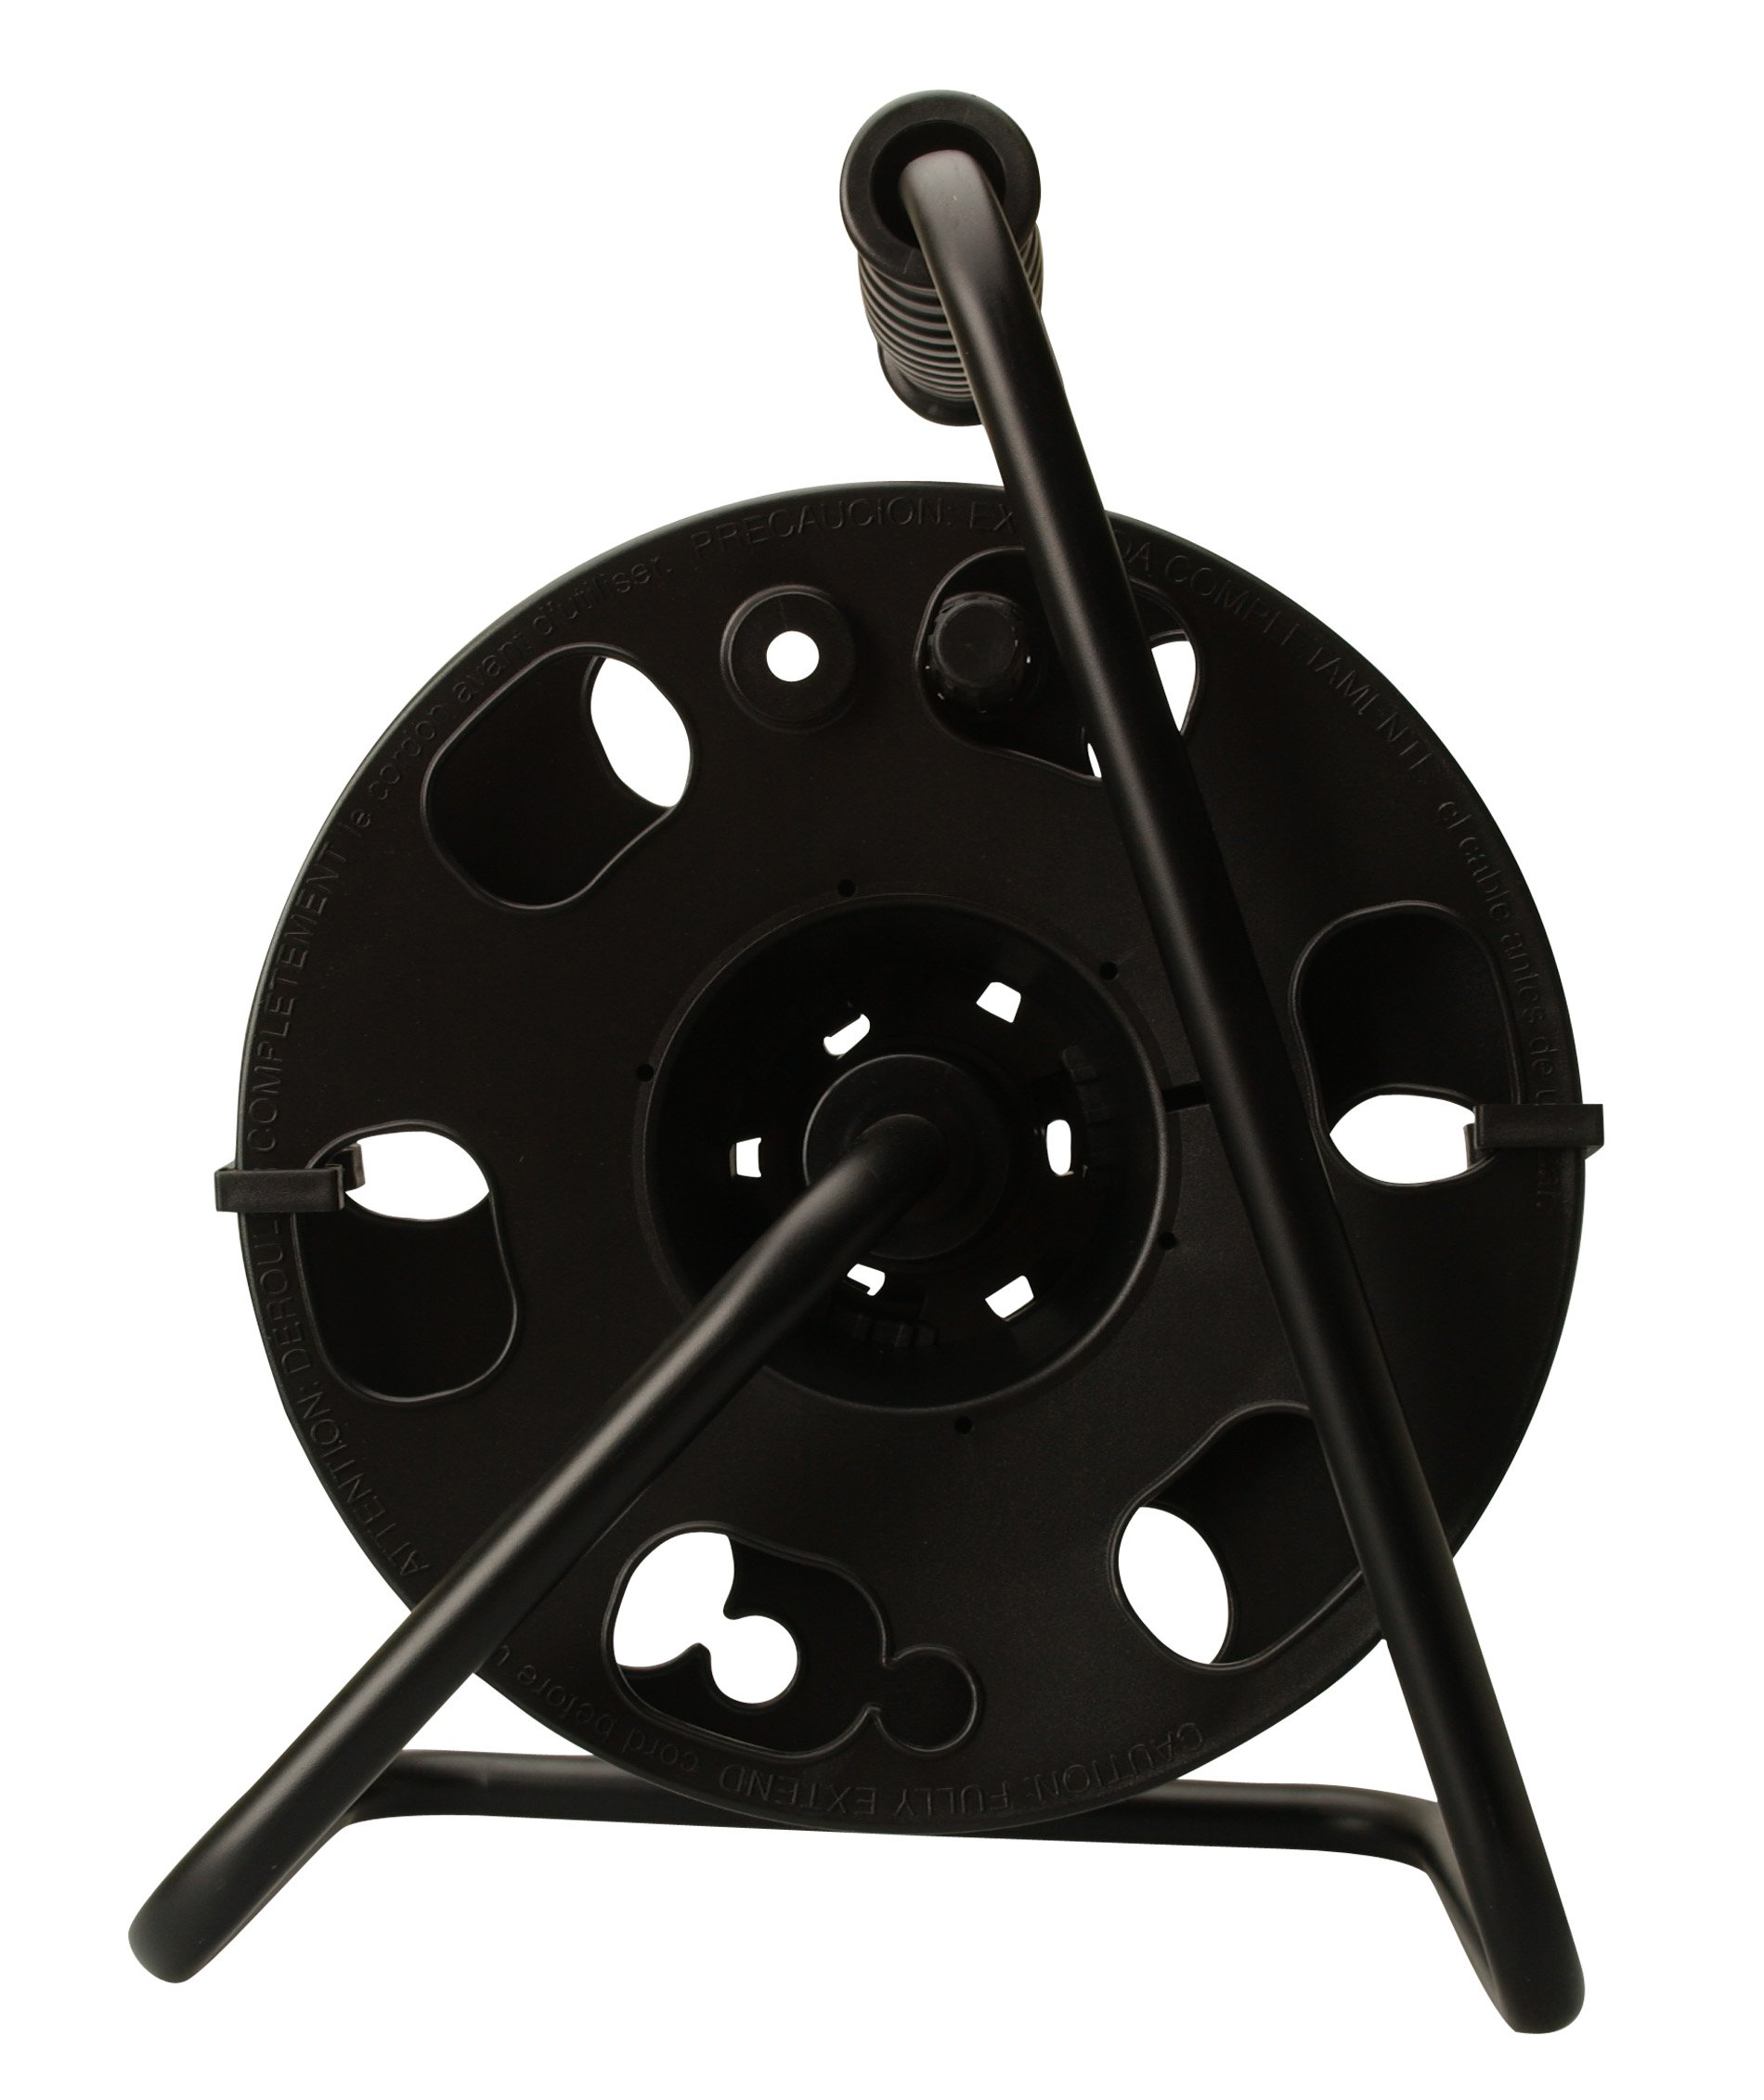 Woods 22849 Metal Cord Reel Stand In Black (Holds Up To 100 Feet 14/3 Gauge Cords)